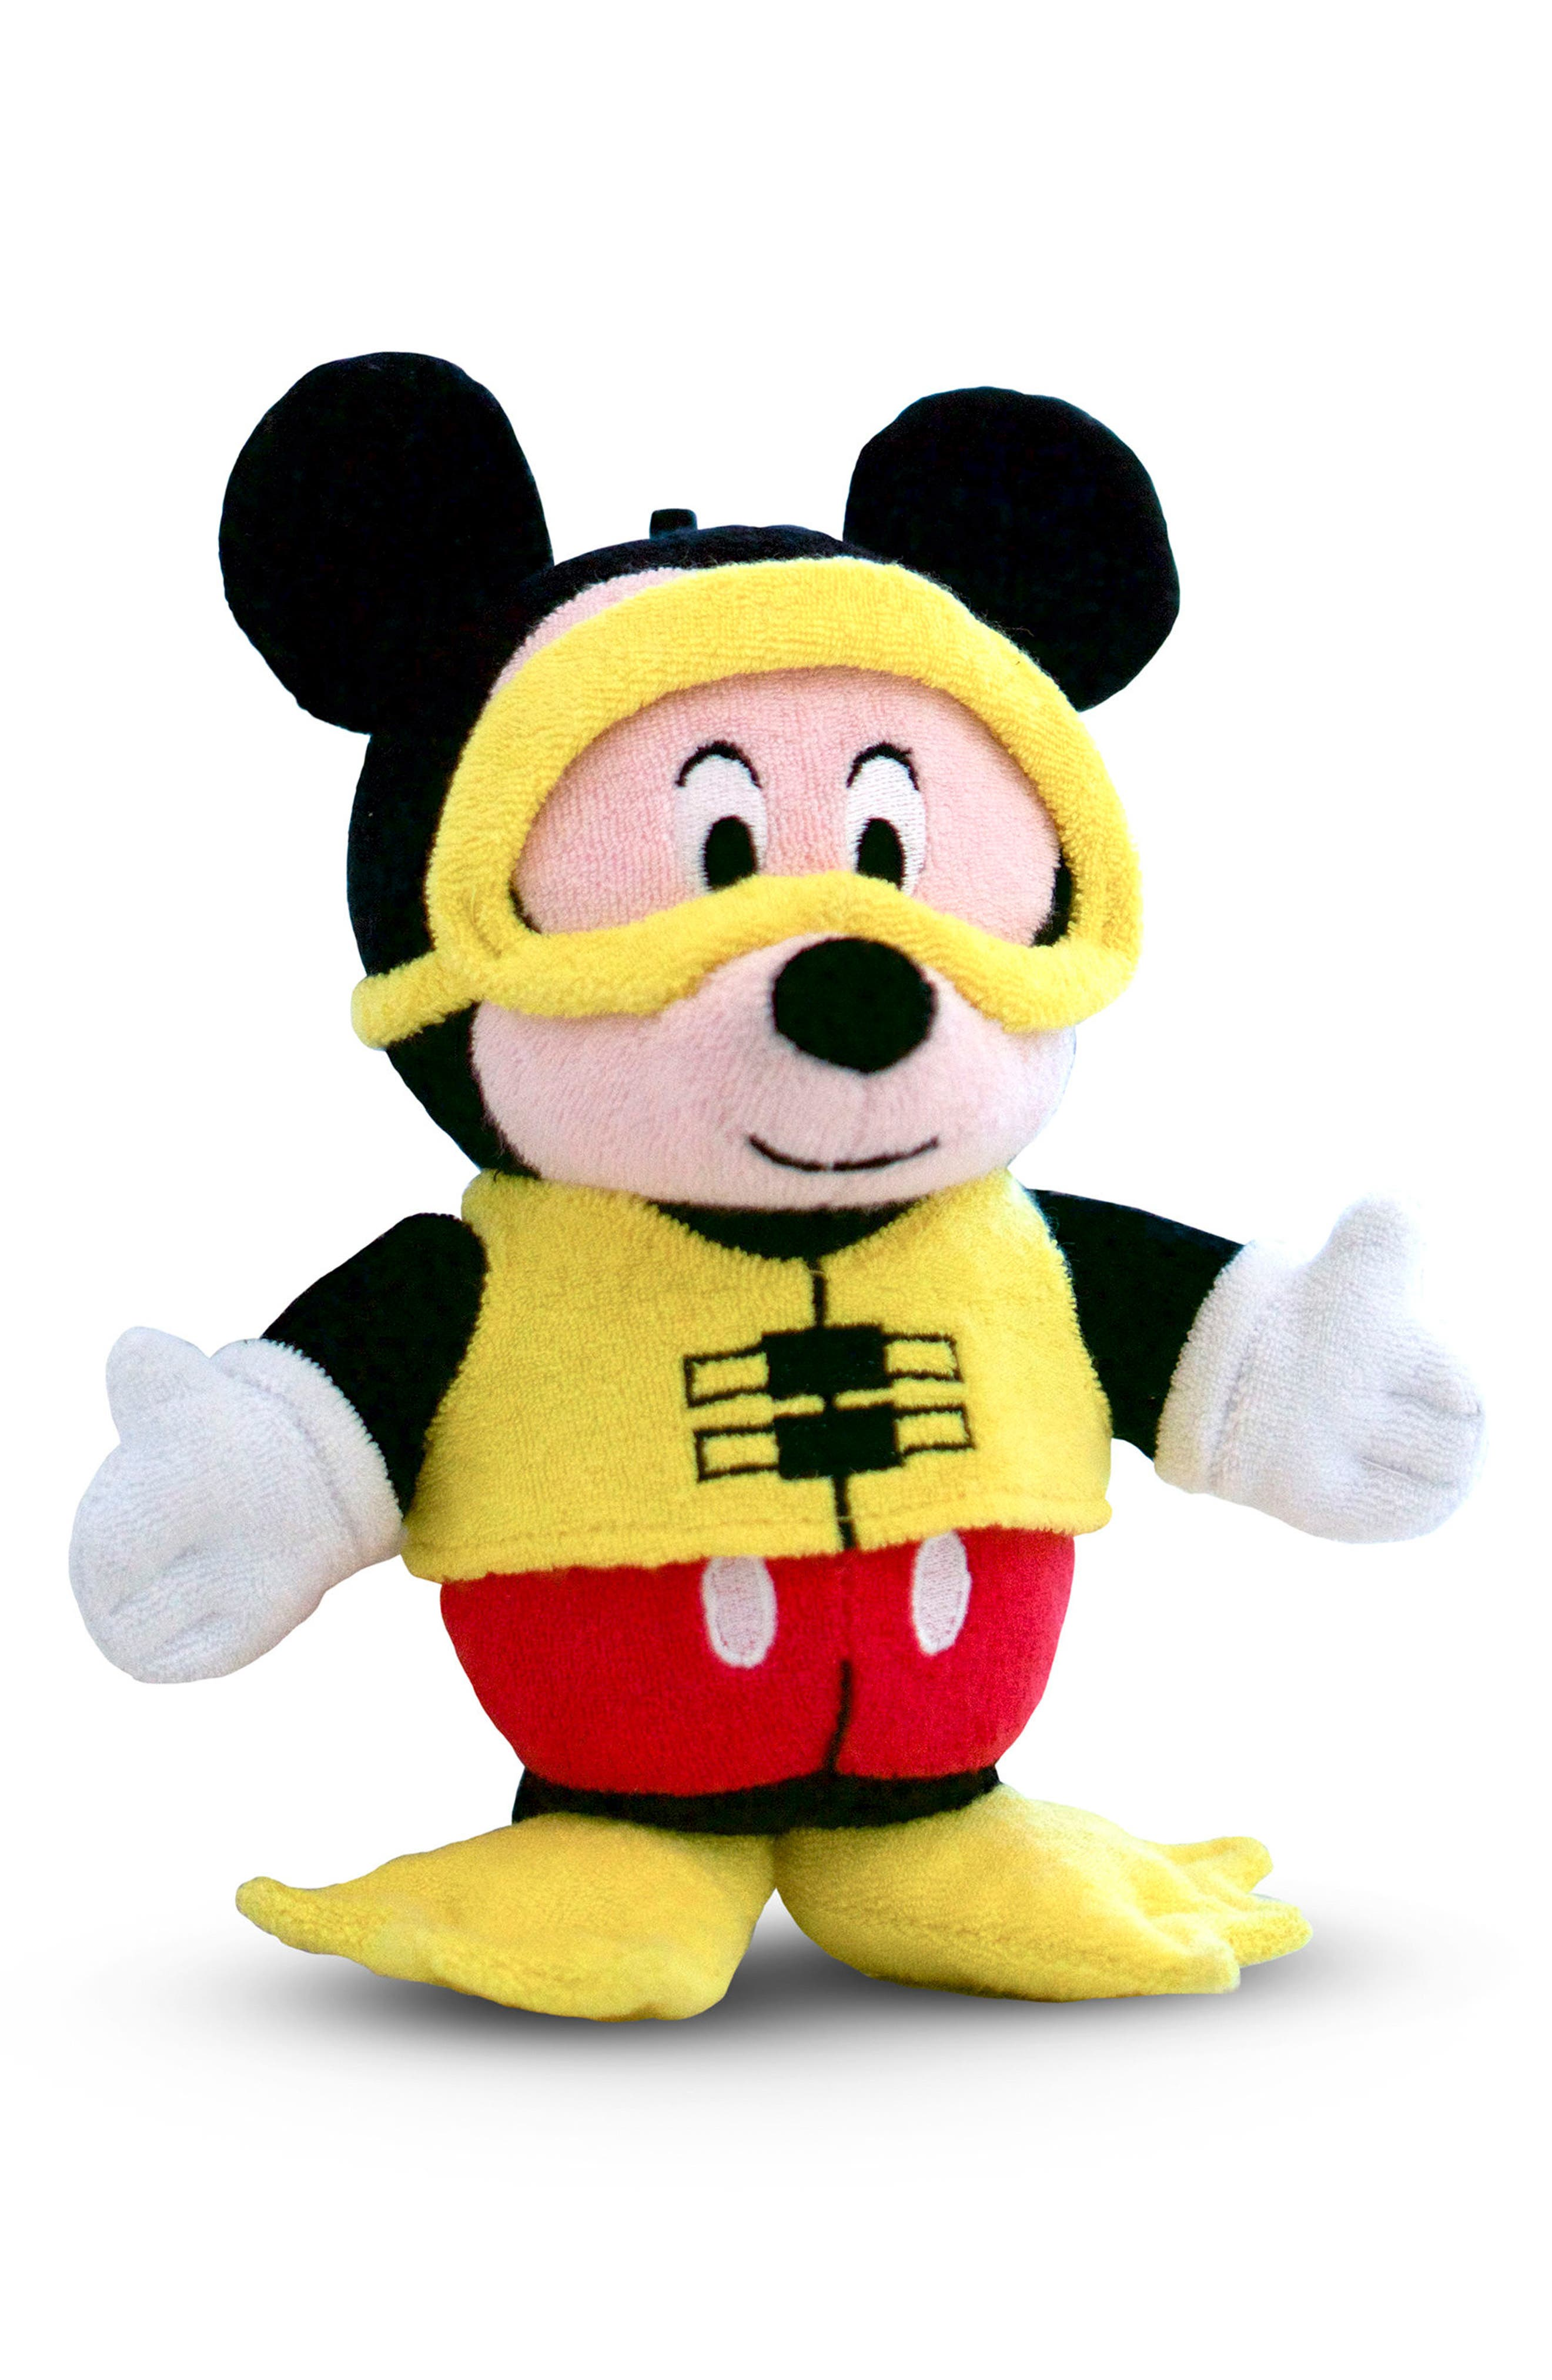 Disney<sup>®</sup> Antimicrobial Terry Cloth Bath Sponge,                         Main,                         color, Mickey Mouse